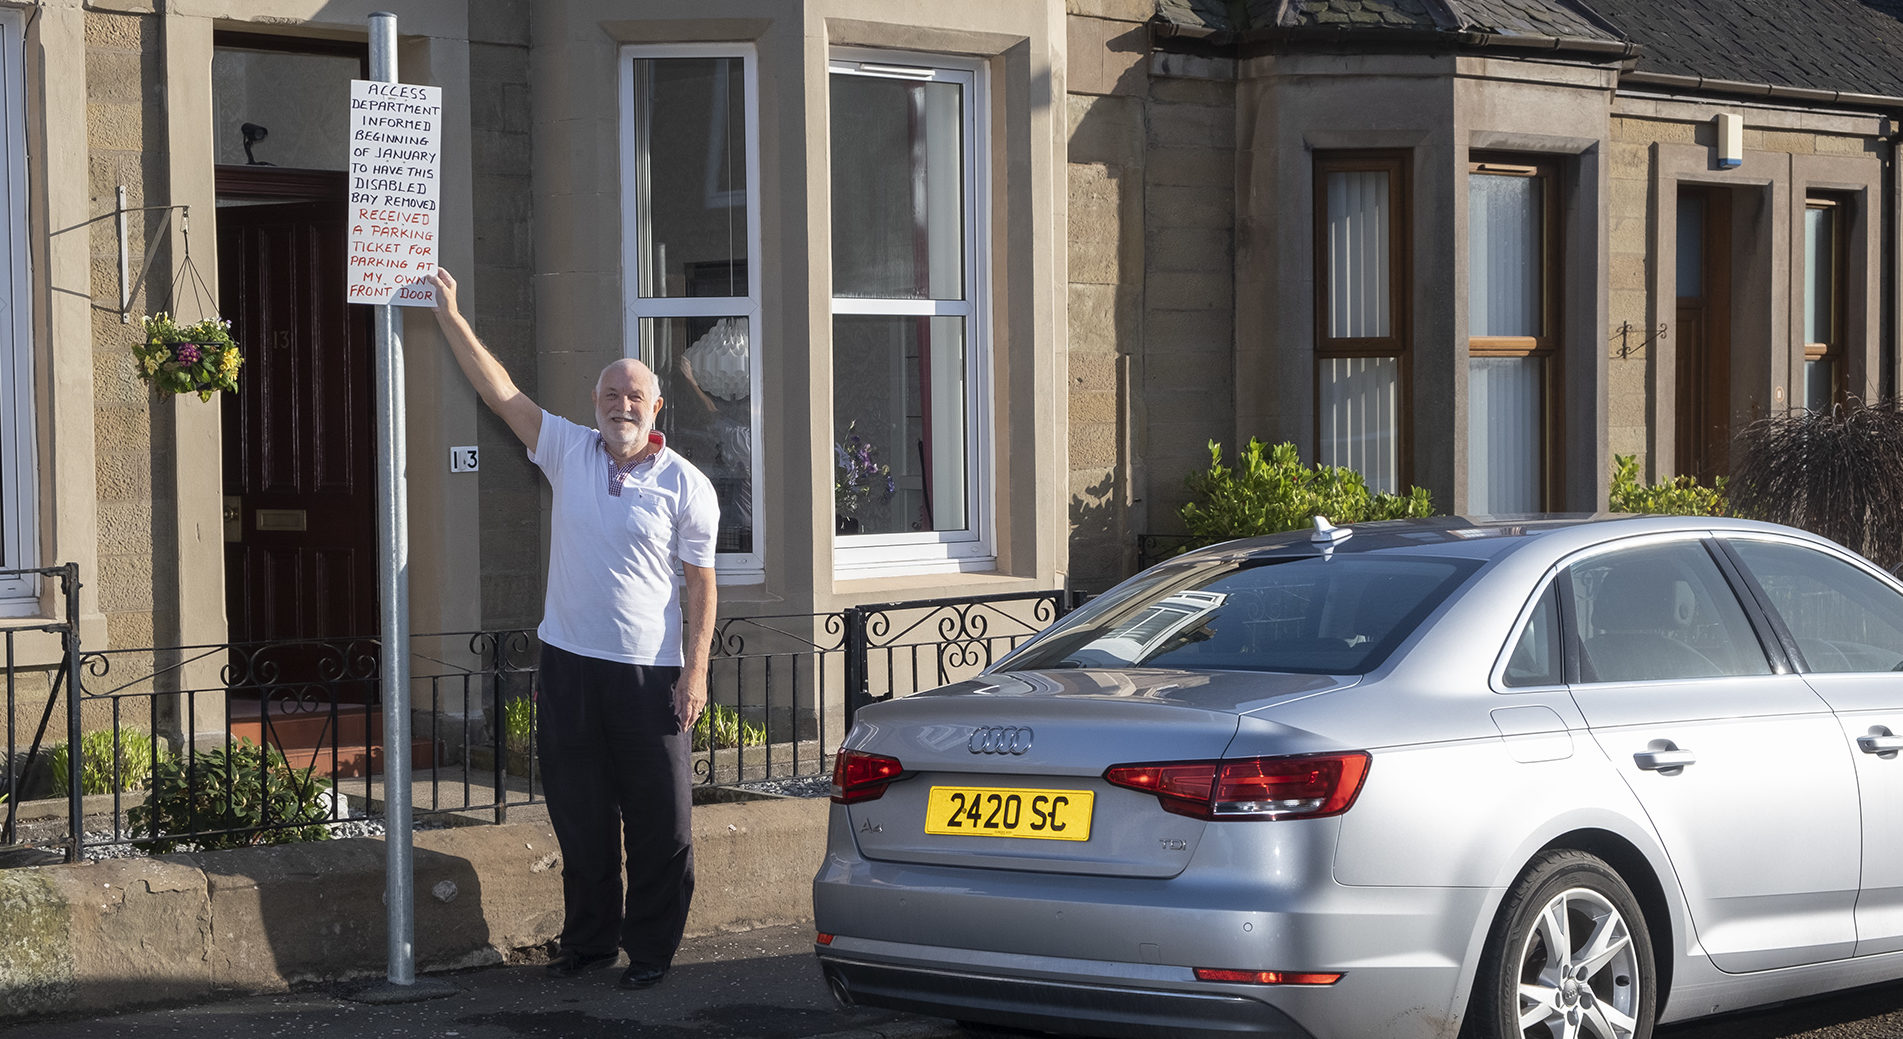 Alexander Cowie, 80, outside his home.